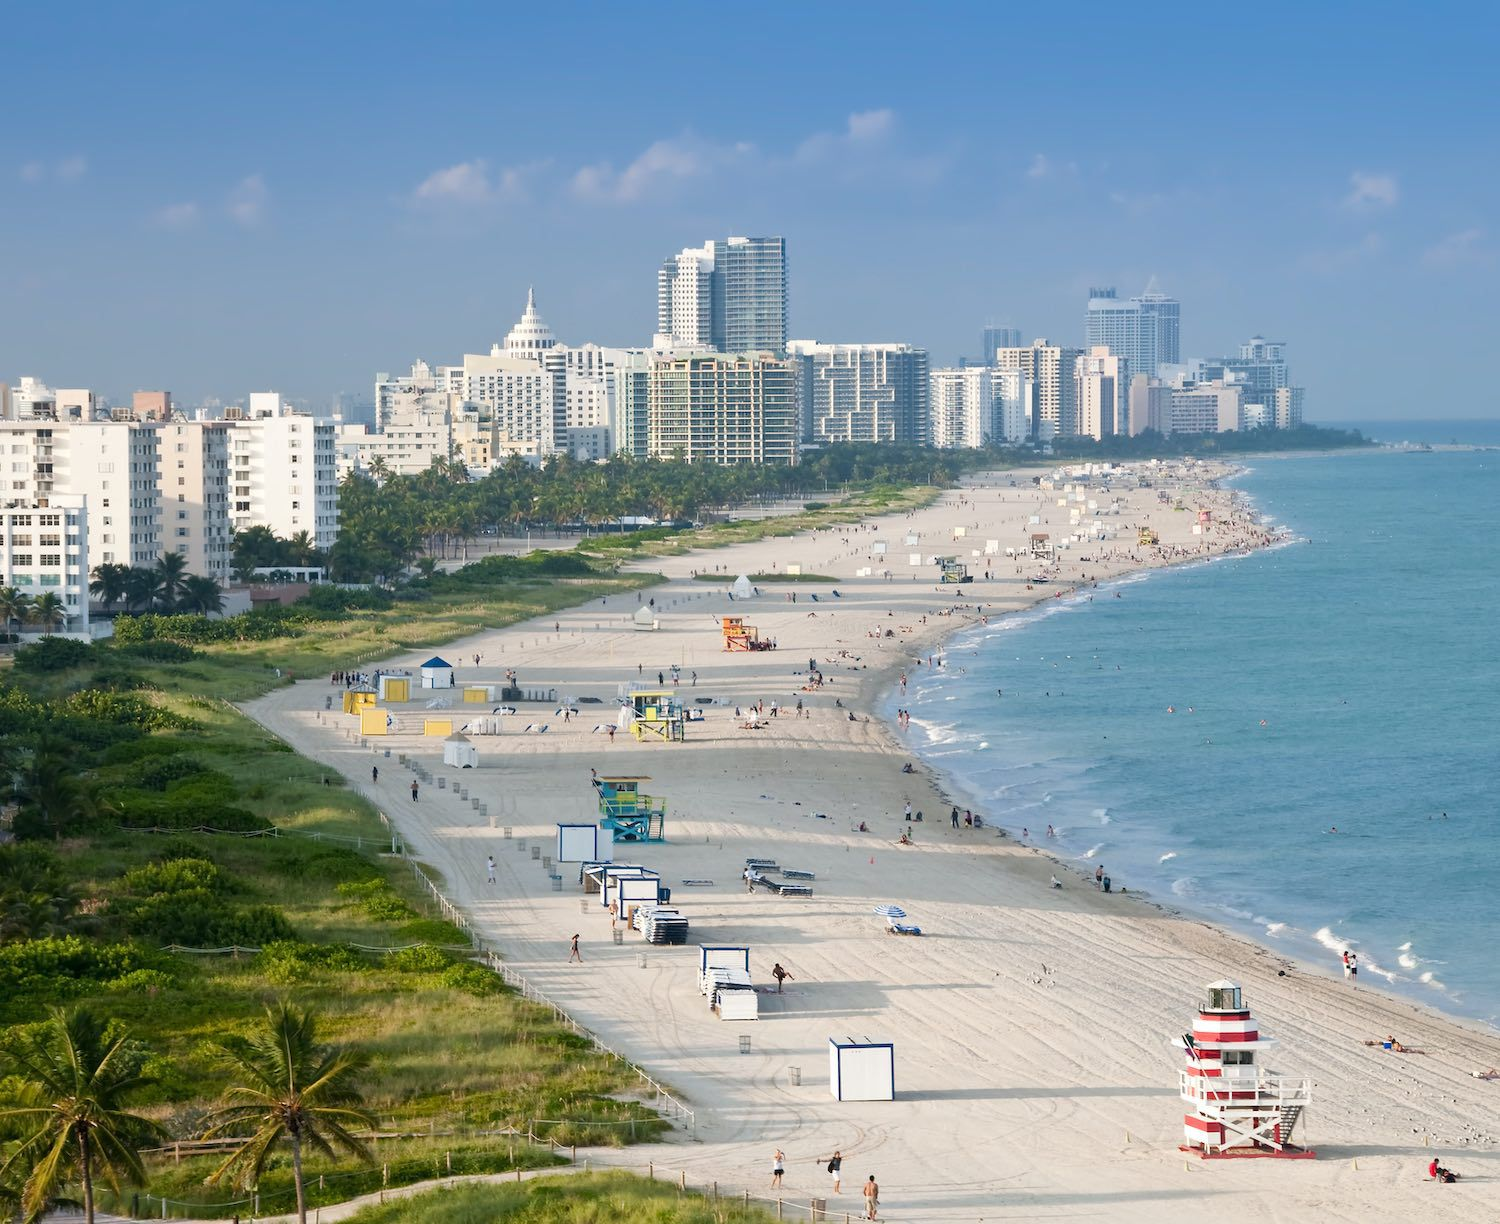 Quotes About Miami for Instagram